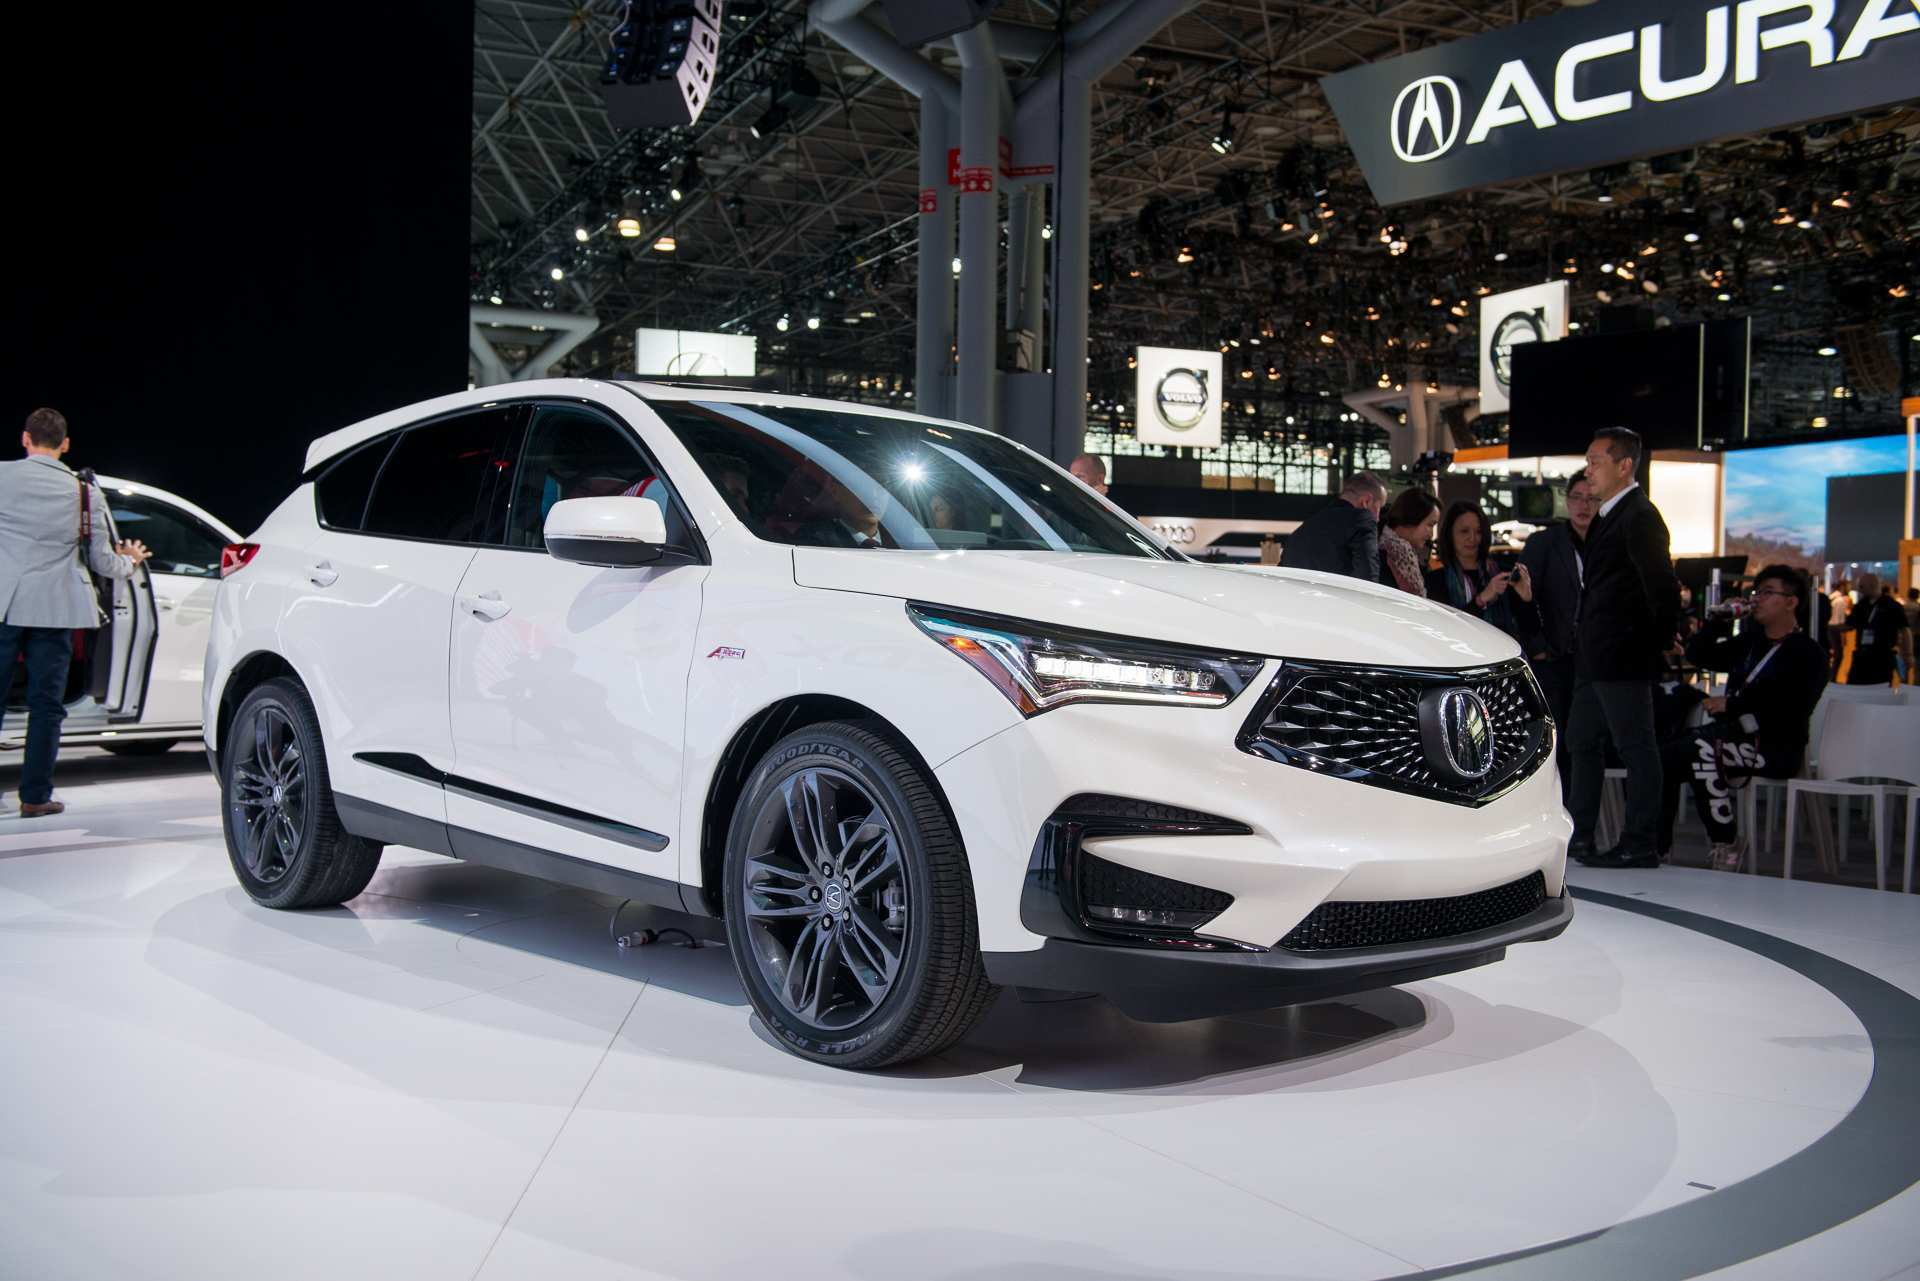 21 New 2019 Acura Price First Drive with 2019 Acura Price